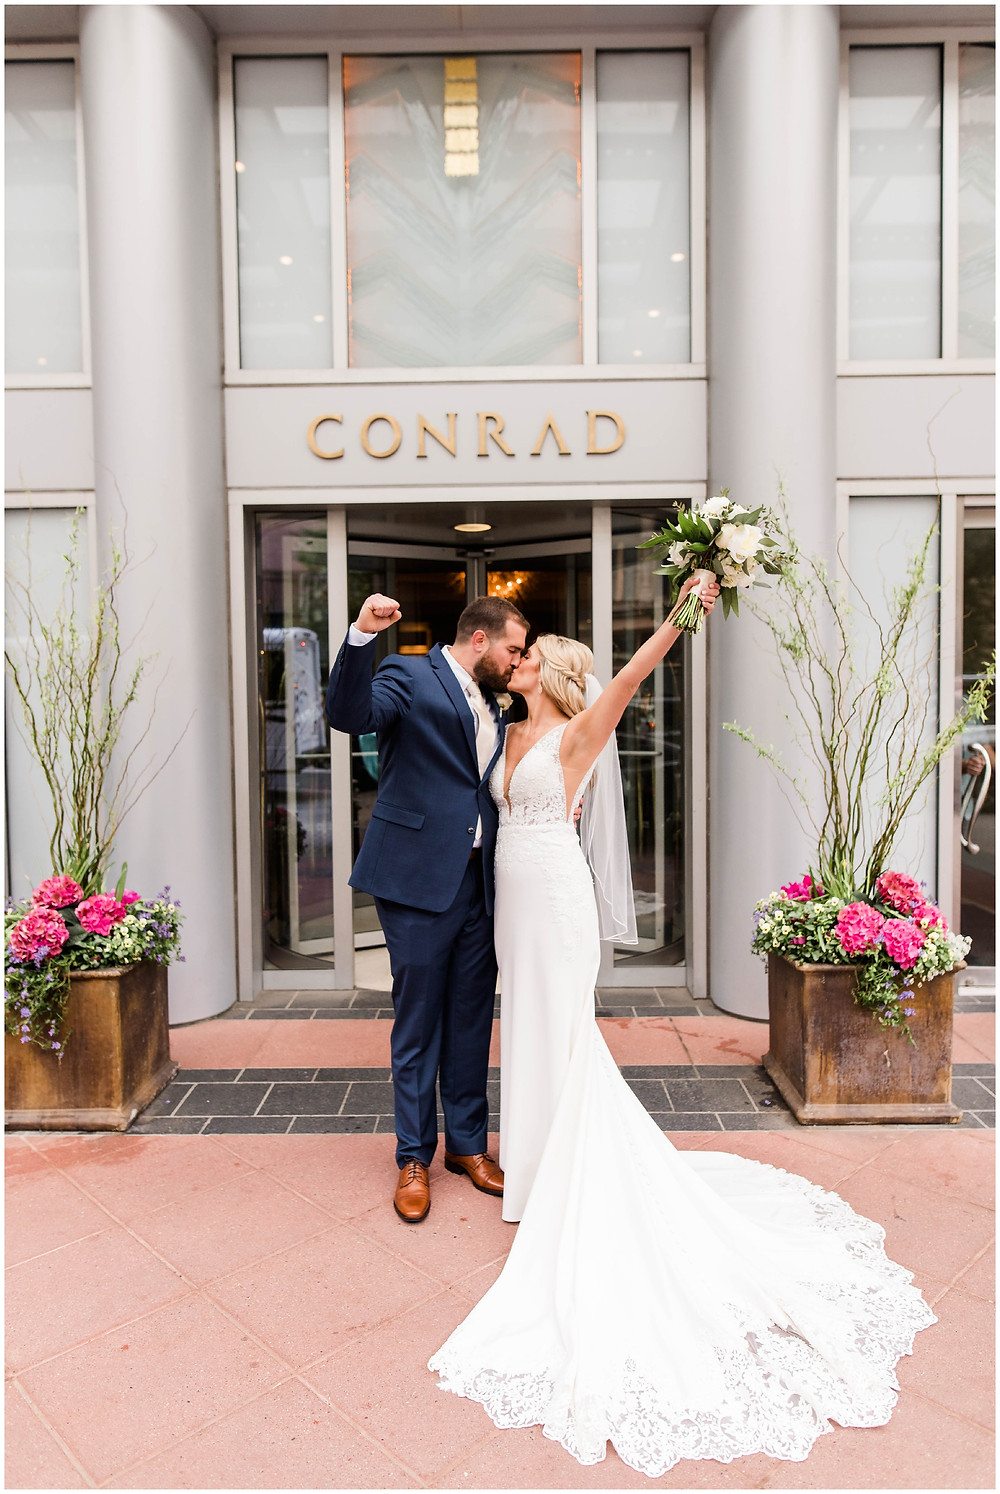 Conrad-hotel-wedding